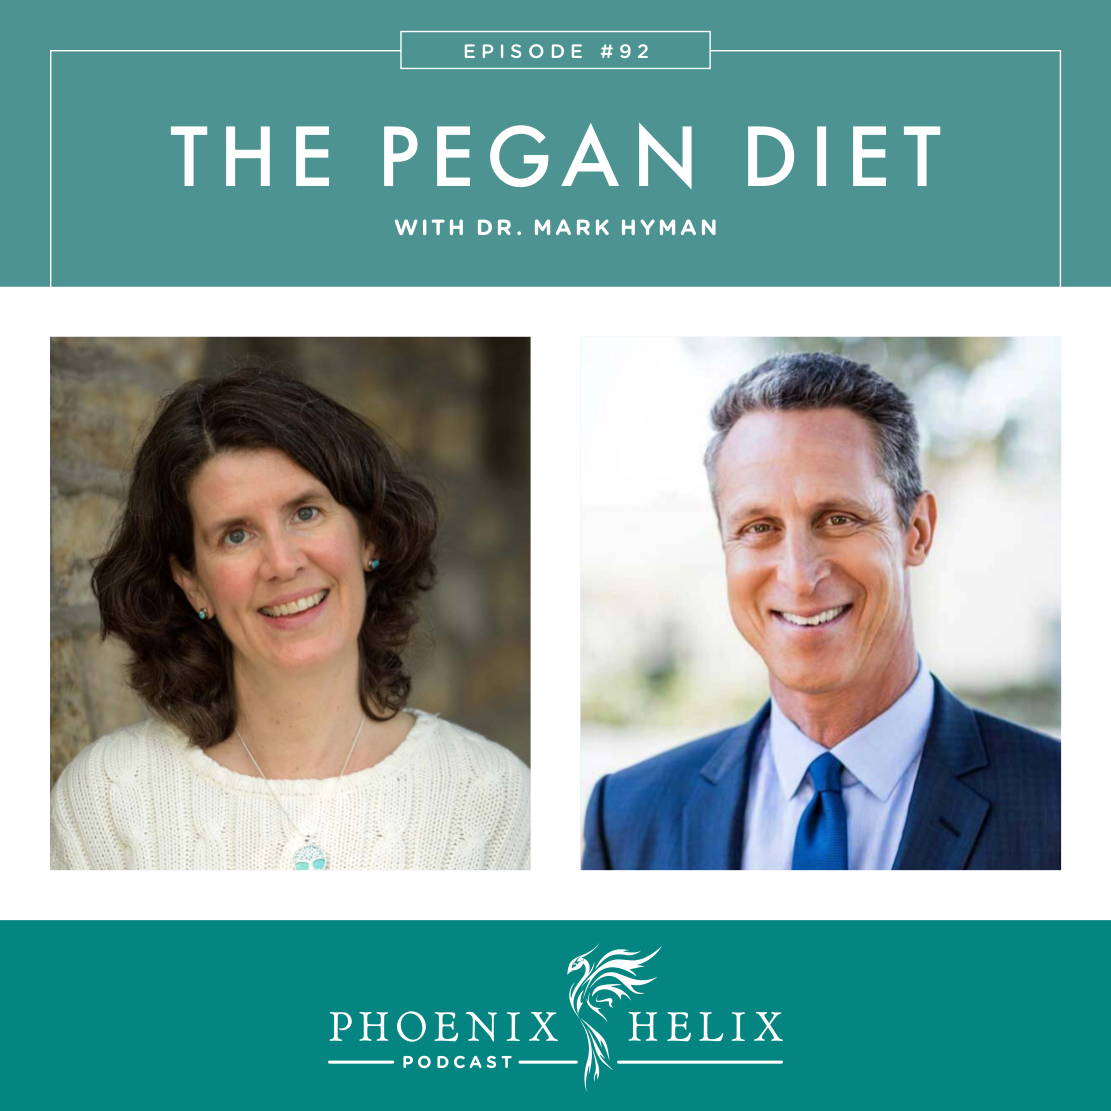 The Pegan Diet with Dr Mark Hyman | Phoenix Helix Podcast